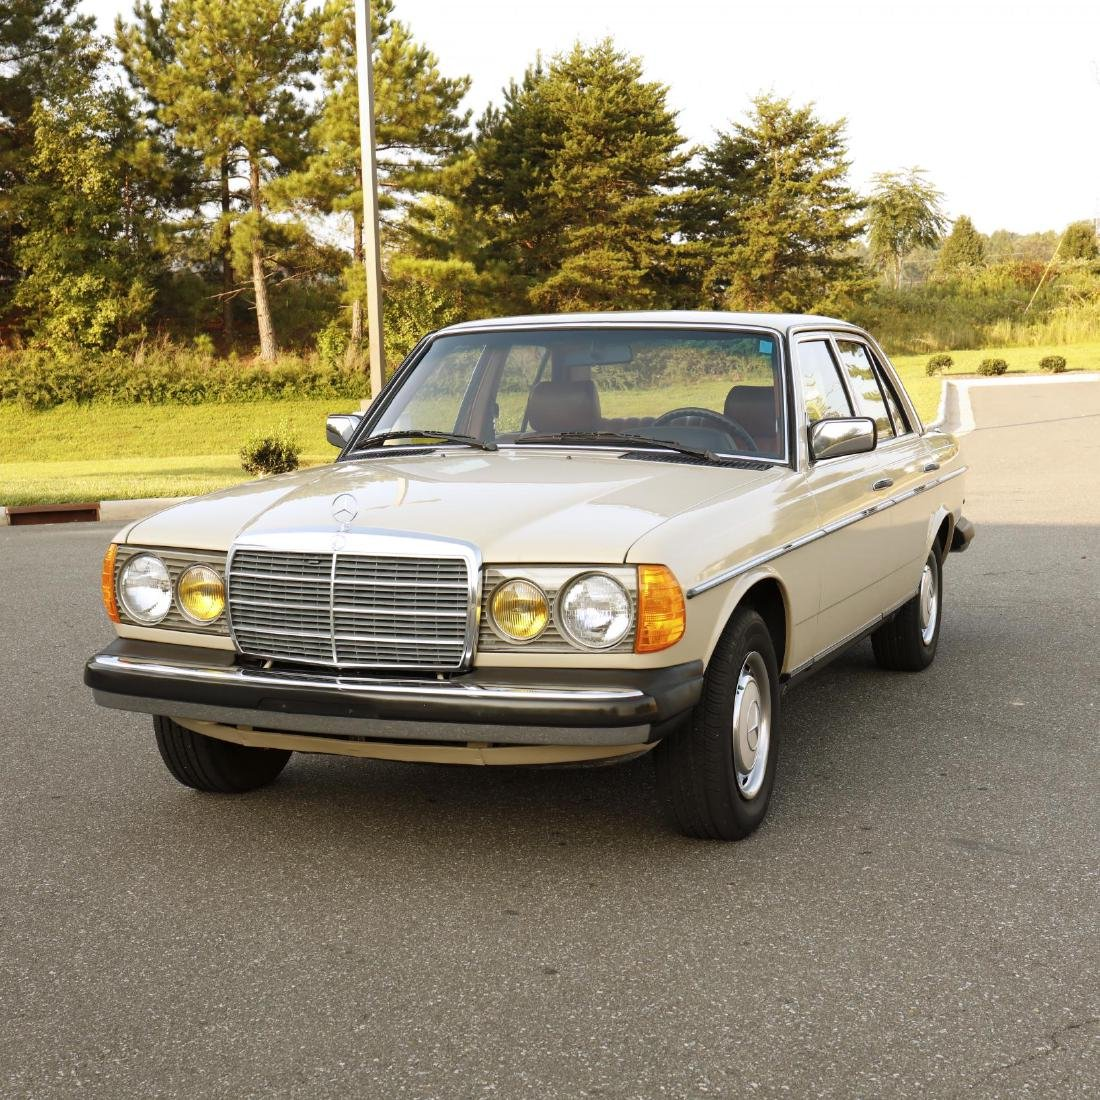 One-Owner 1981 Mercedes Benz 240D - 2